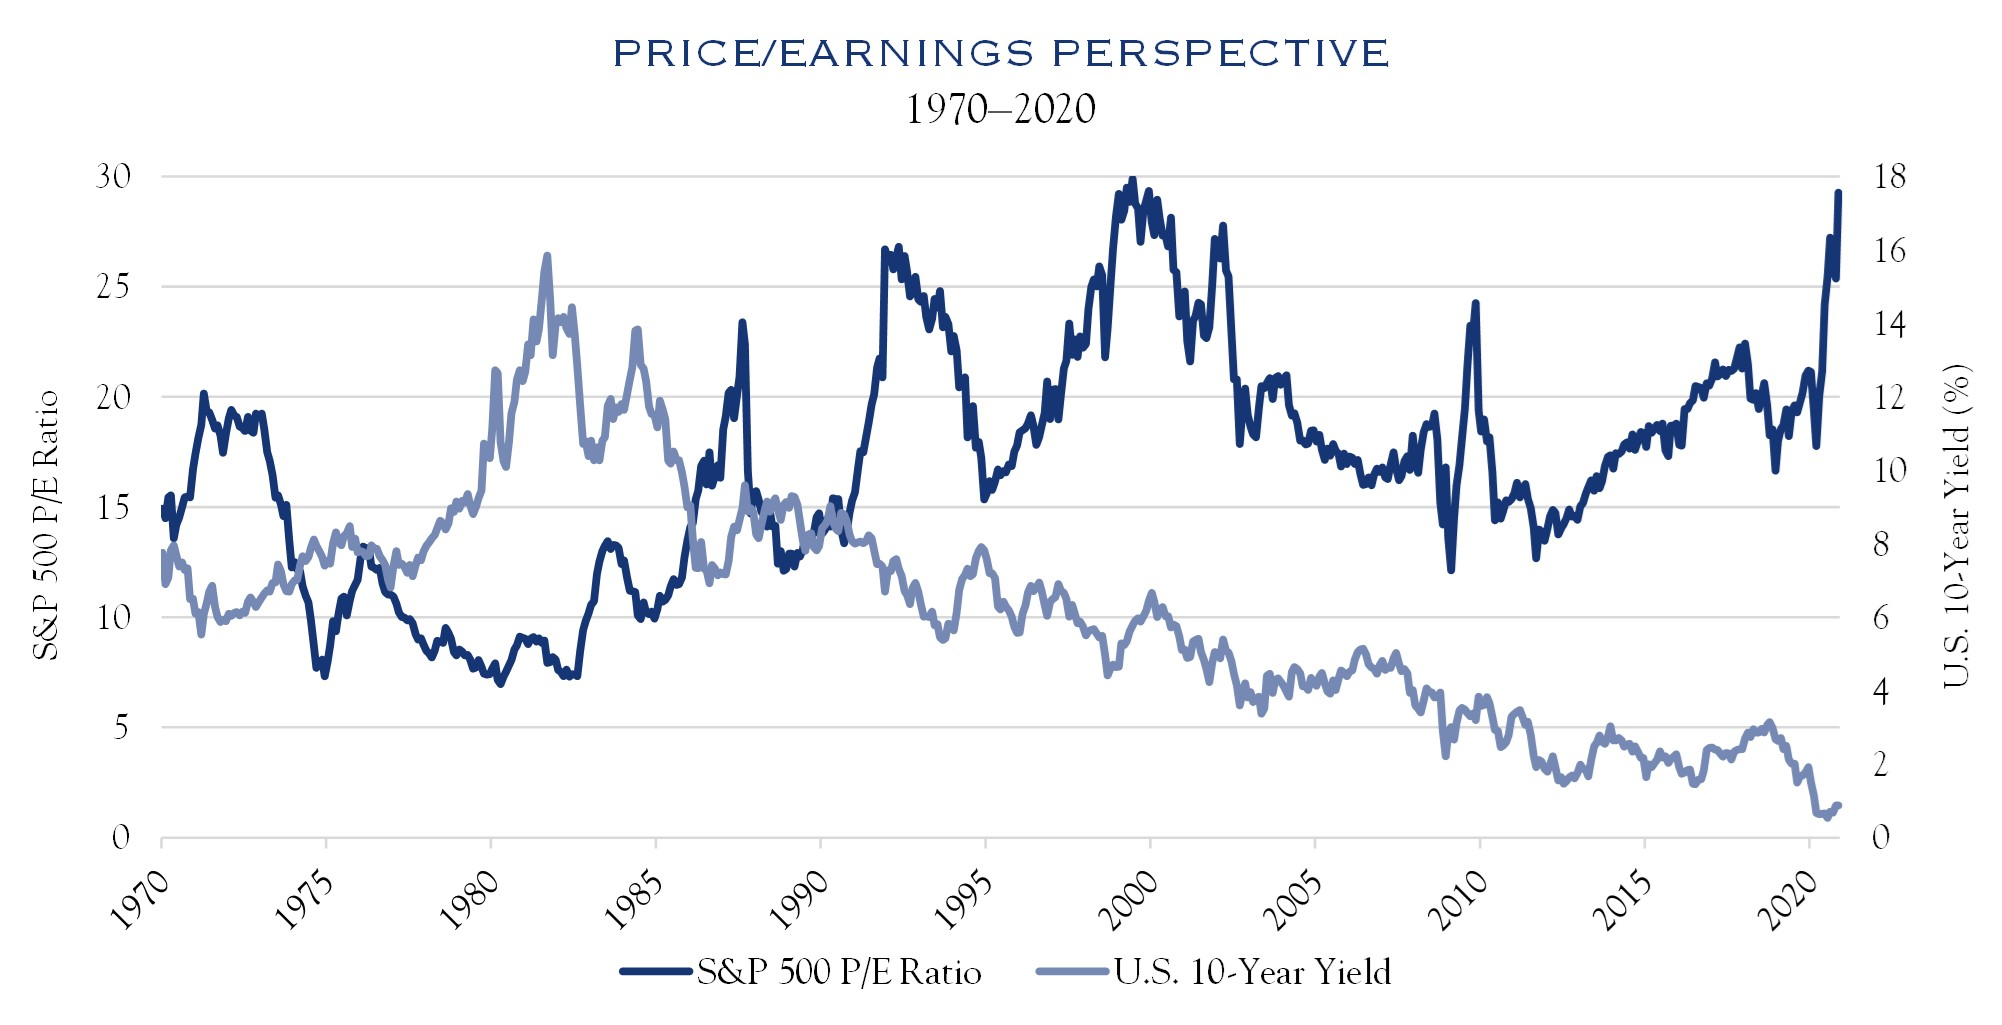 Winter 2021 Price/Earning Perspective 1970-2020 Chart1